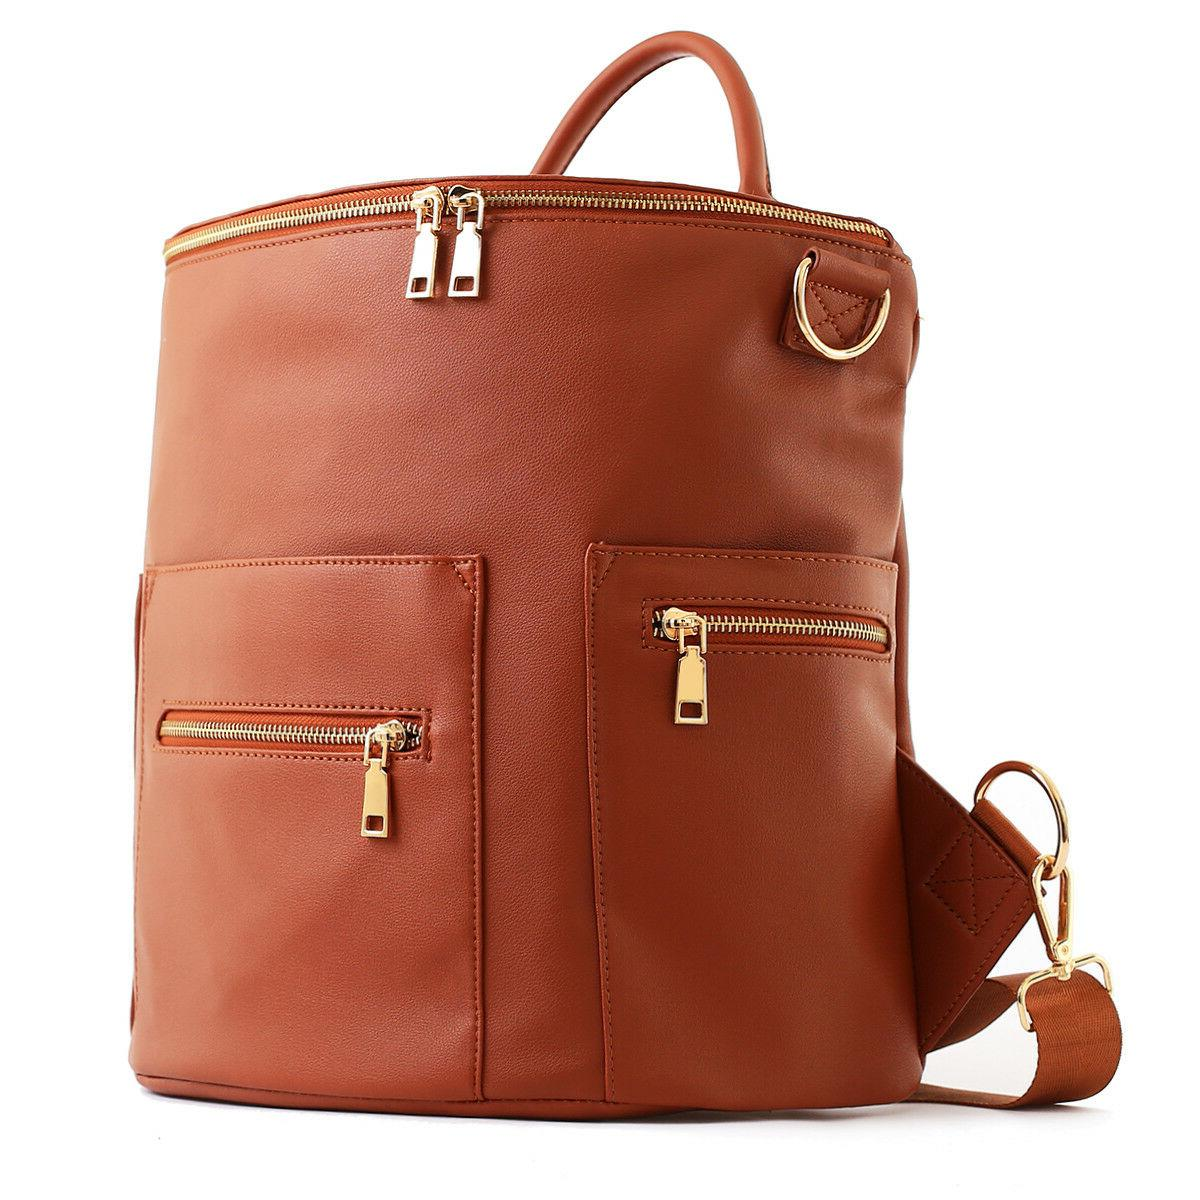 Faux Leather Bag with and Convertible